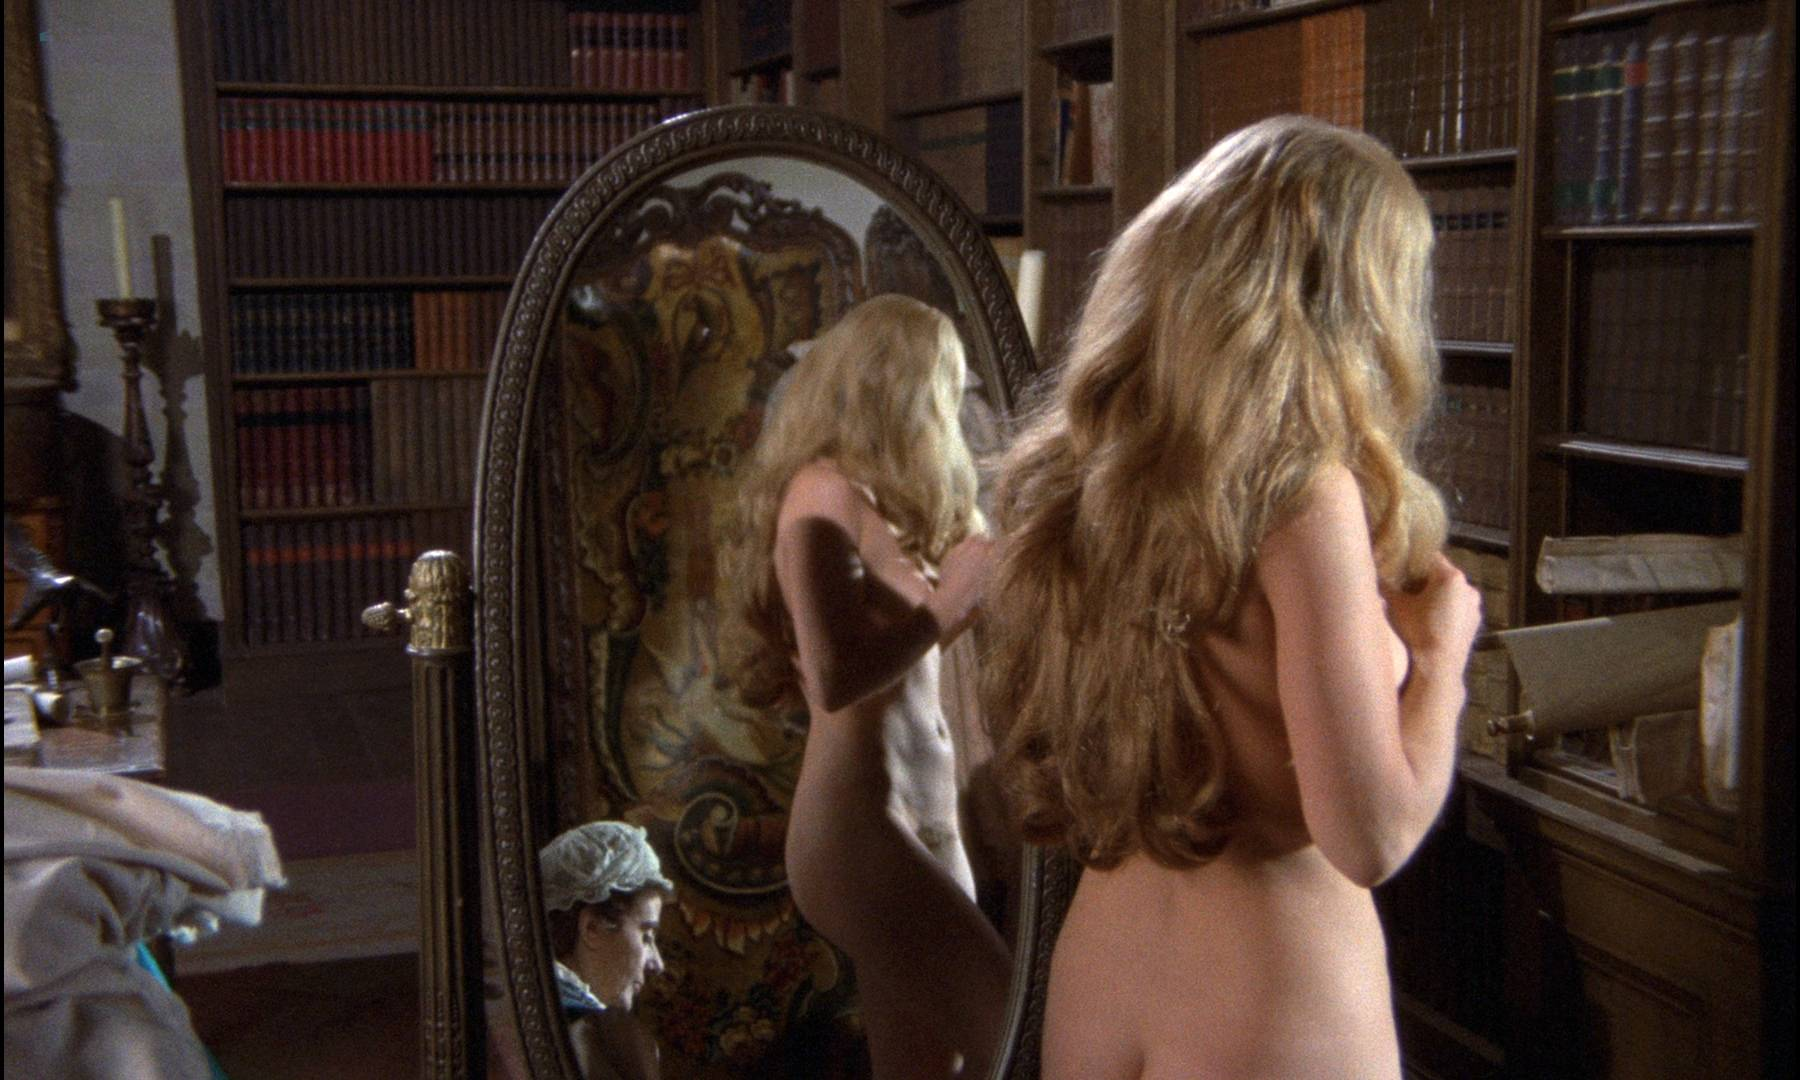 Gillian Hills nude topless Virginia Wetherell nude full frontal - Demons of the Mind (UK-1972) HD 1080p BluRay (8)